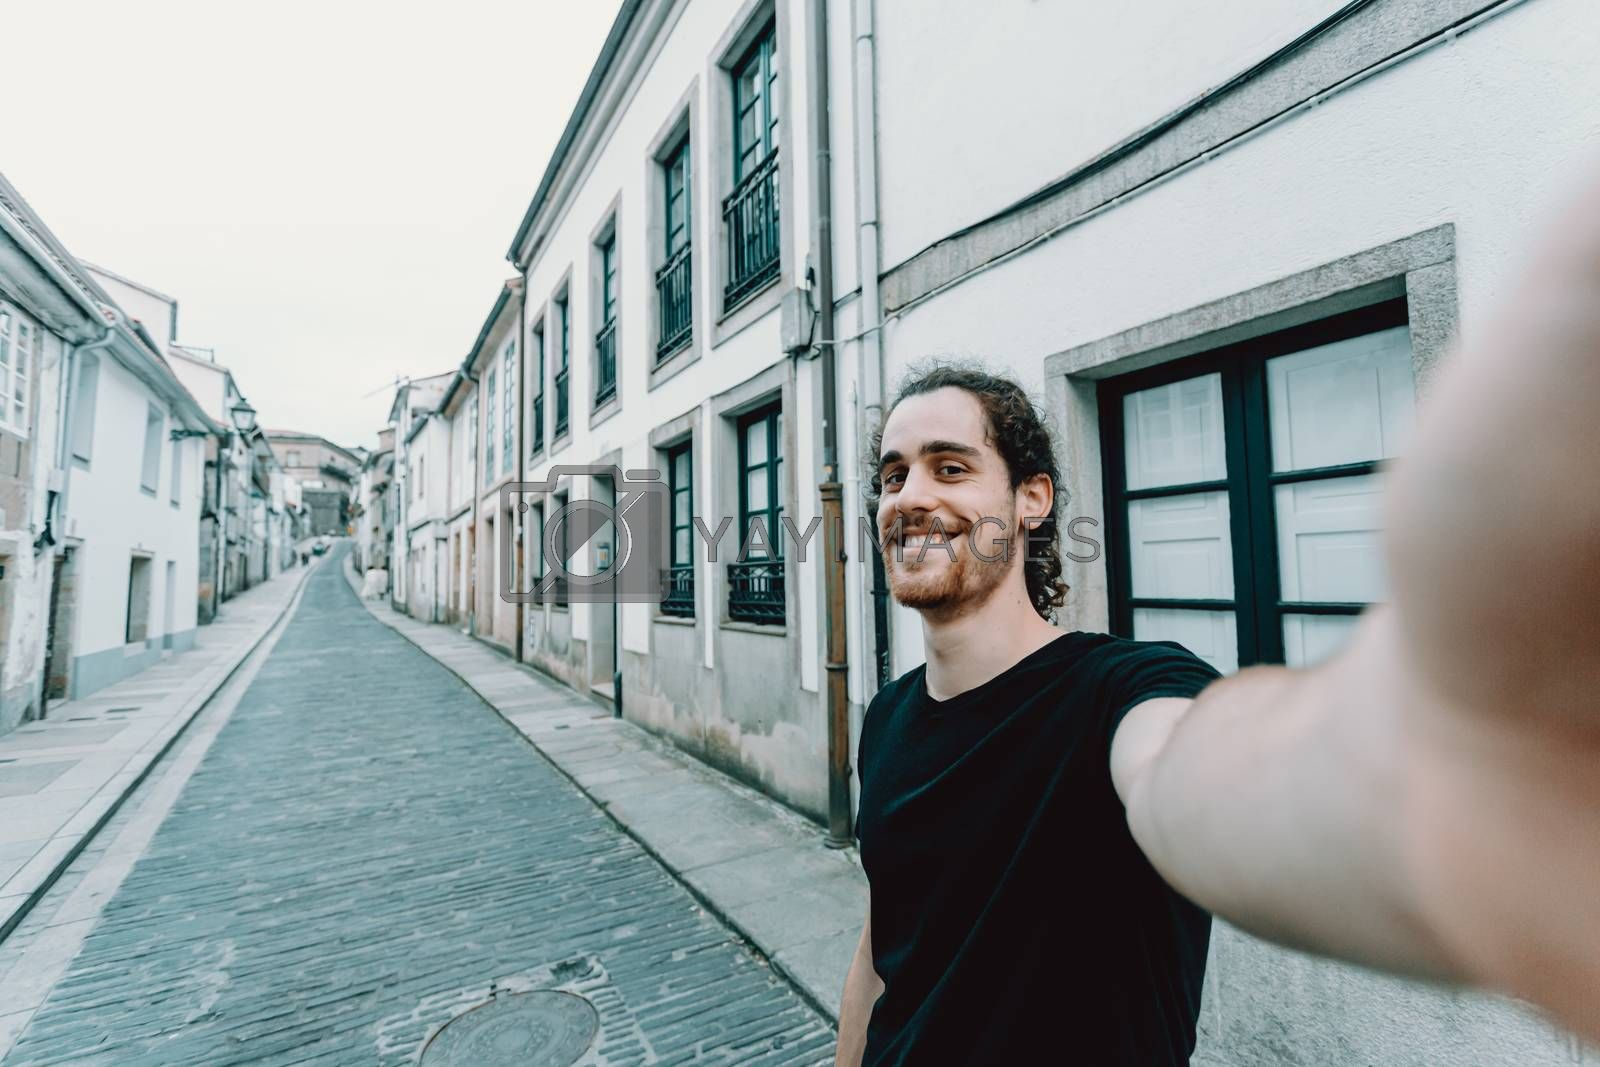 A young man with glasses taking a selfie on a old spanish street